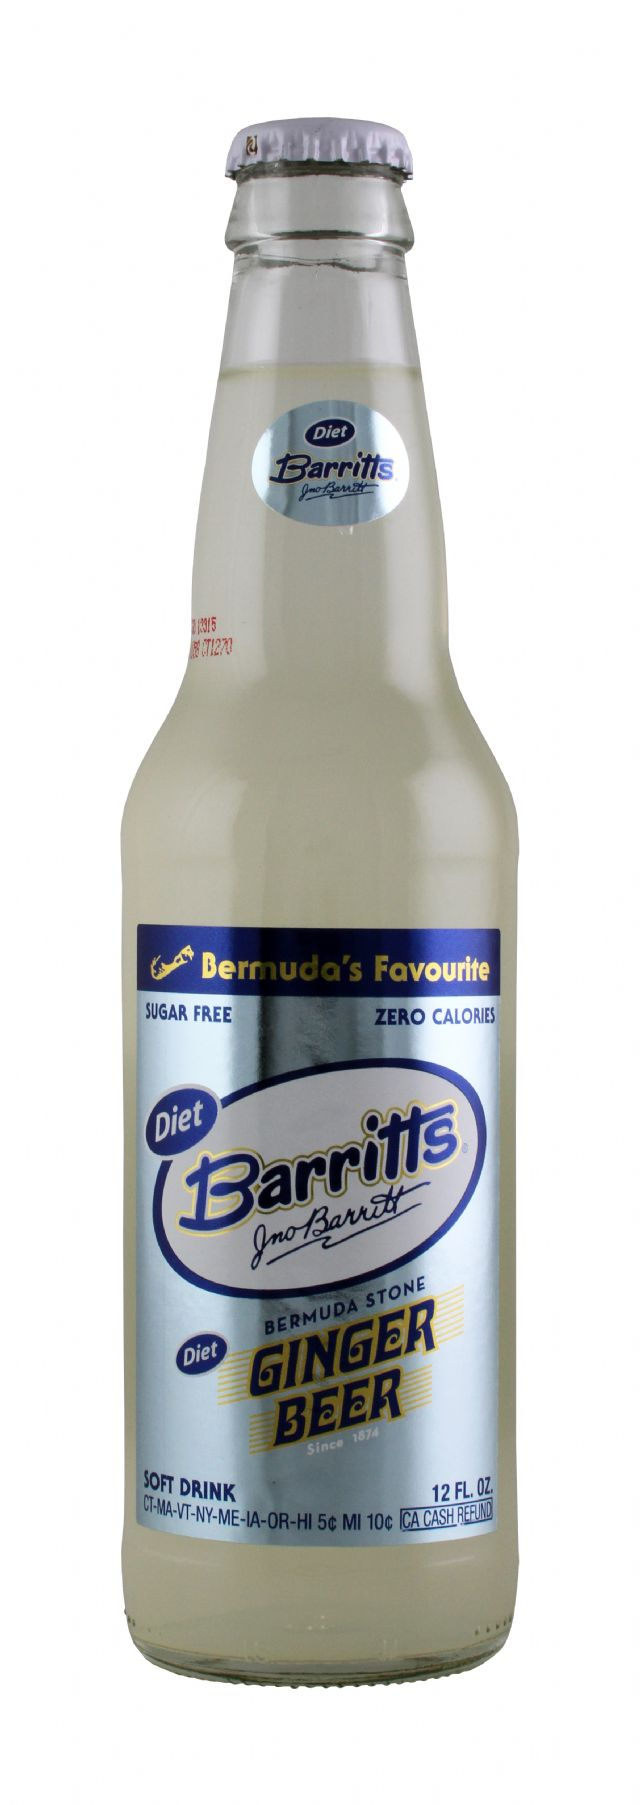 Barritts Ginger Beer: Barritts SugarFree Front